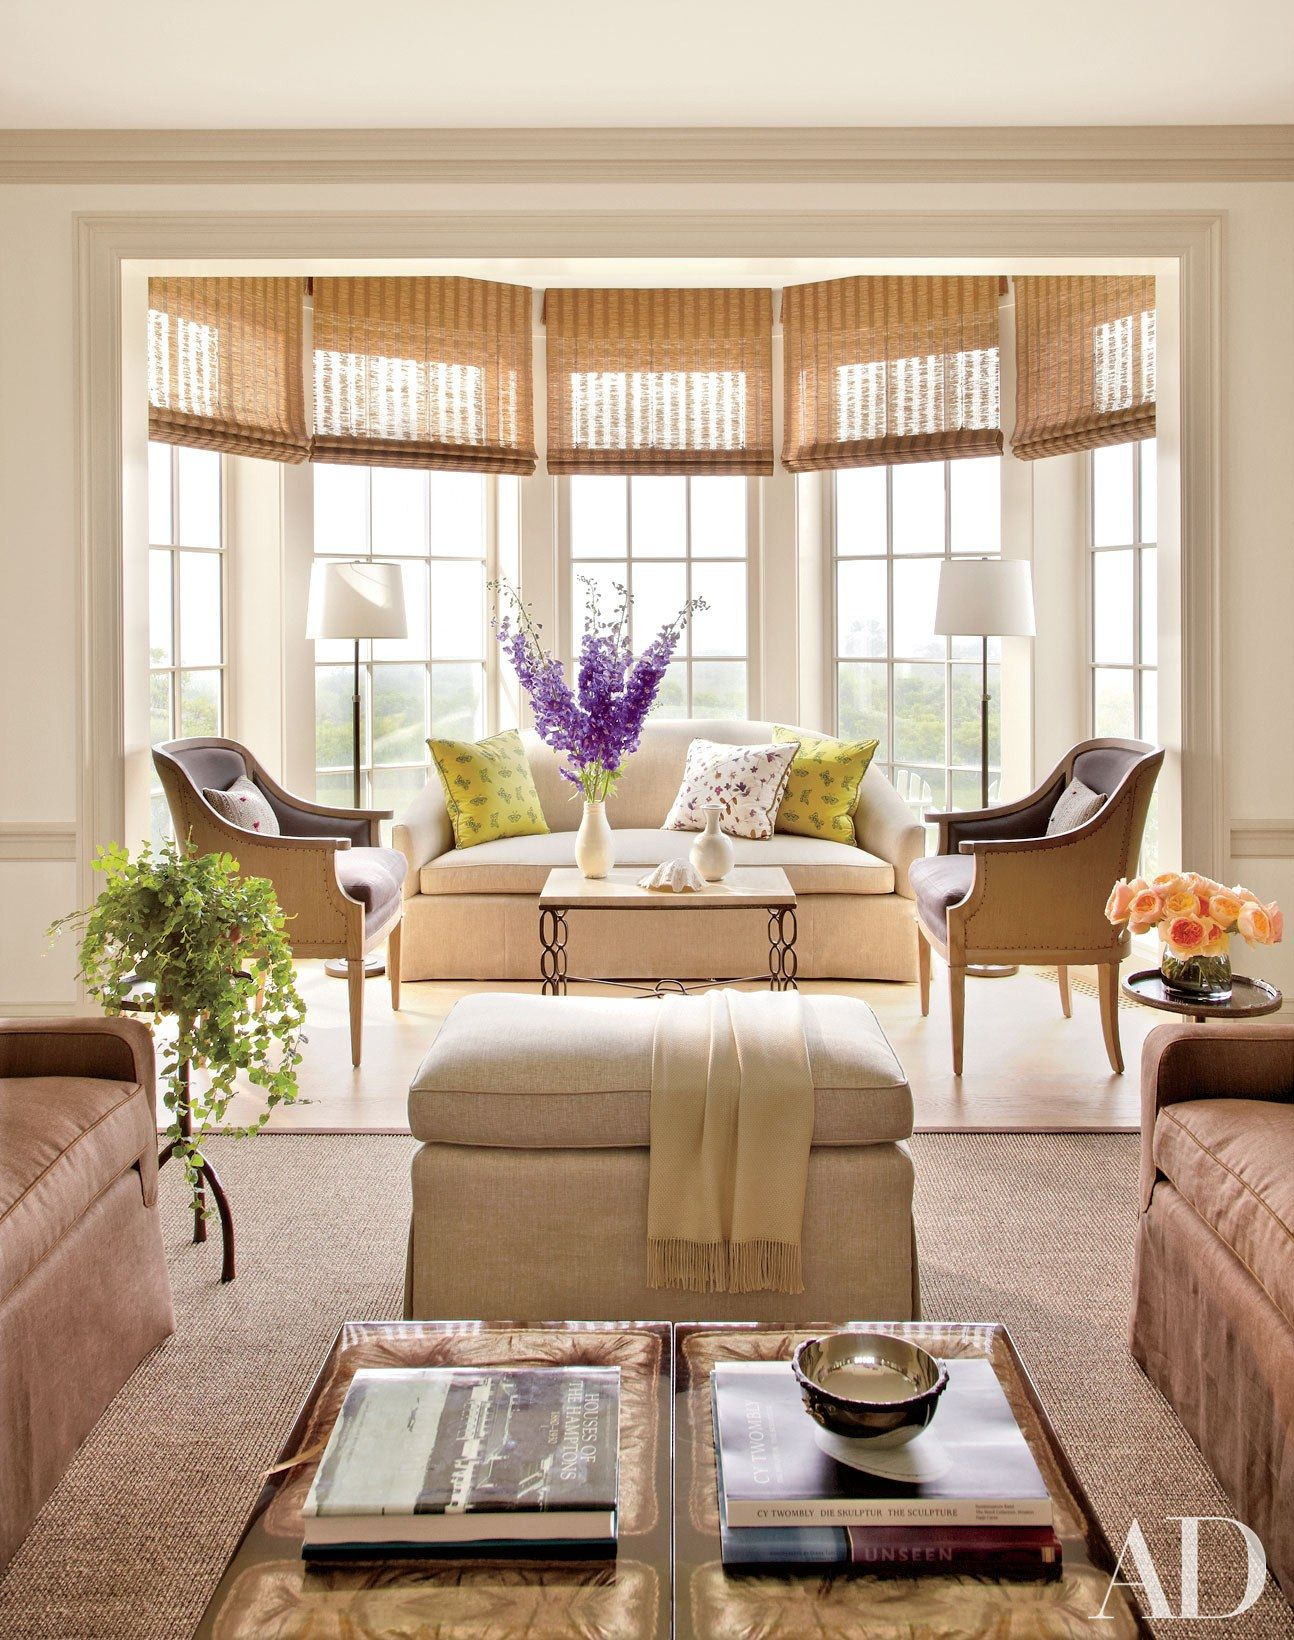 Bay window decor  interior designers on great design for every style  architectural